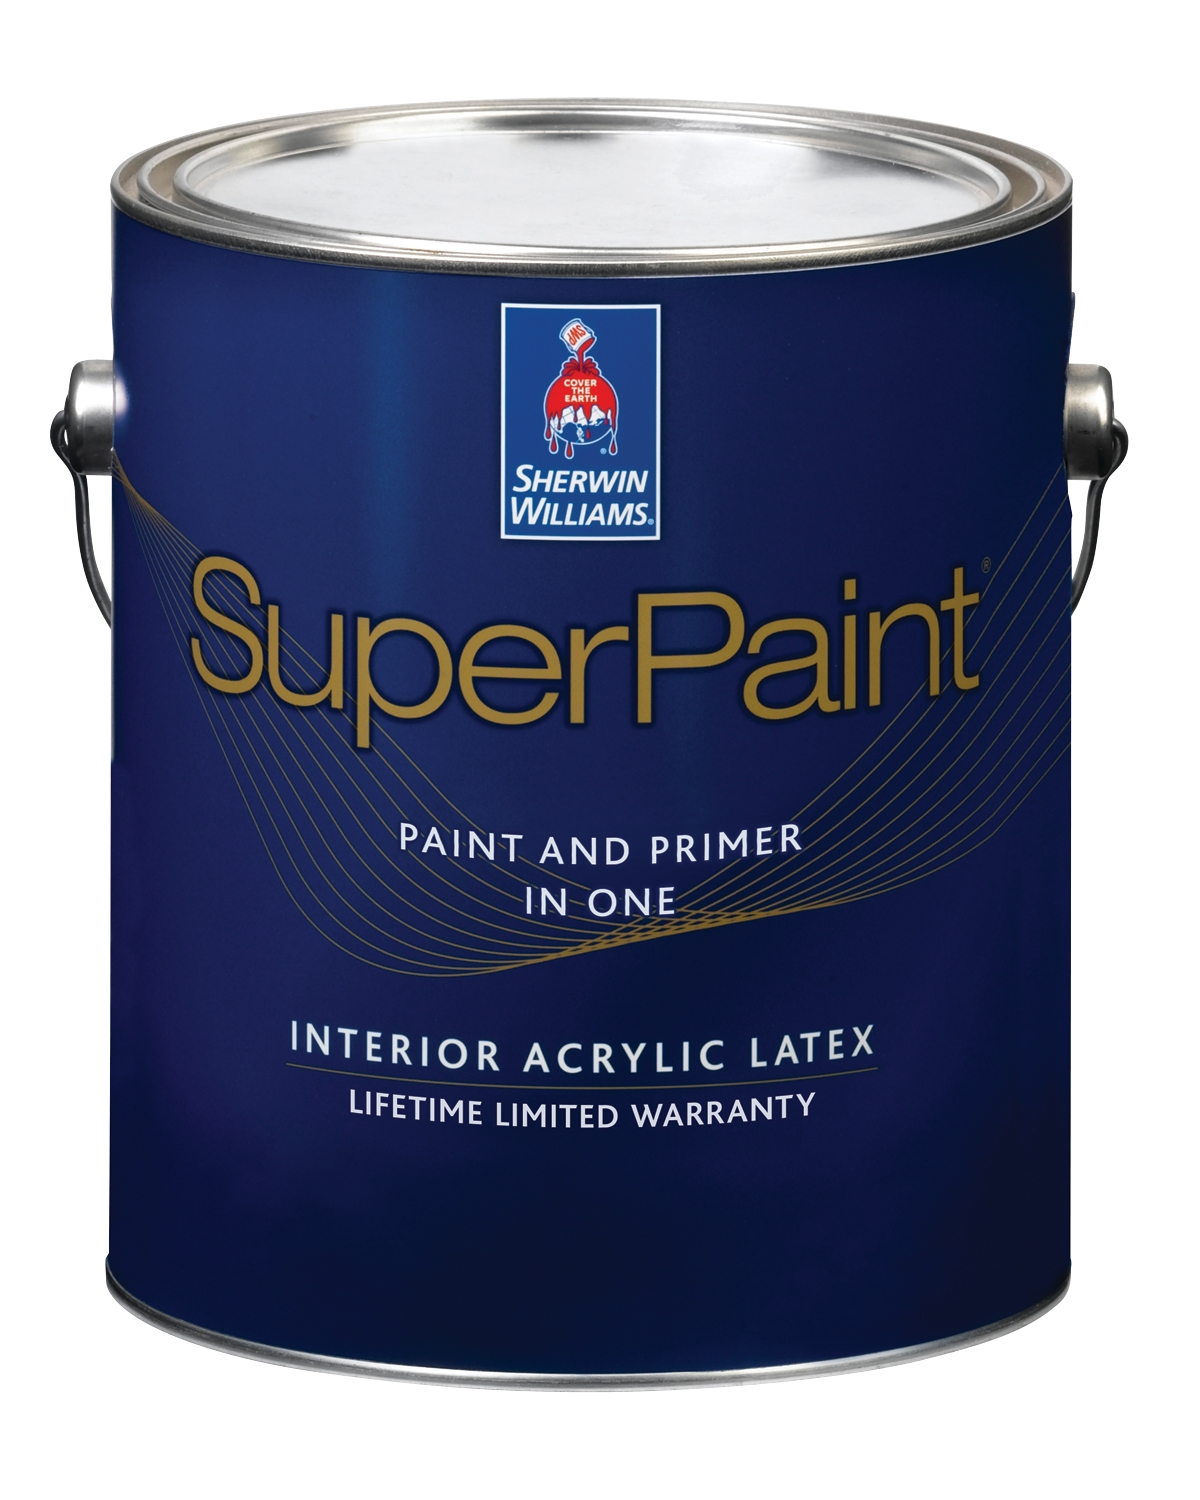 Sherwin Williams Superpaint Exterior Acrylic Latex Paint Home Design Idea